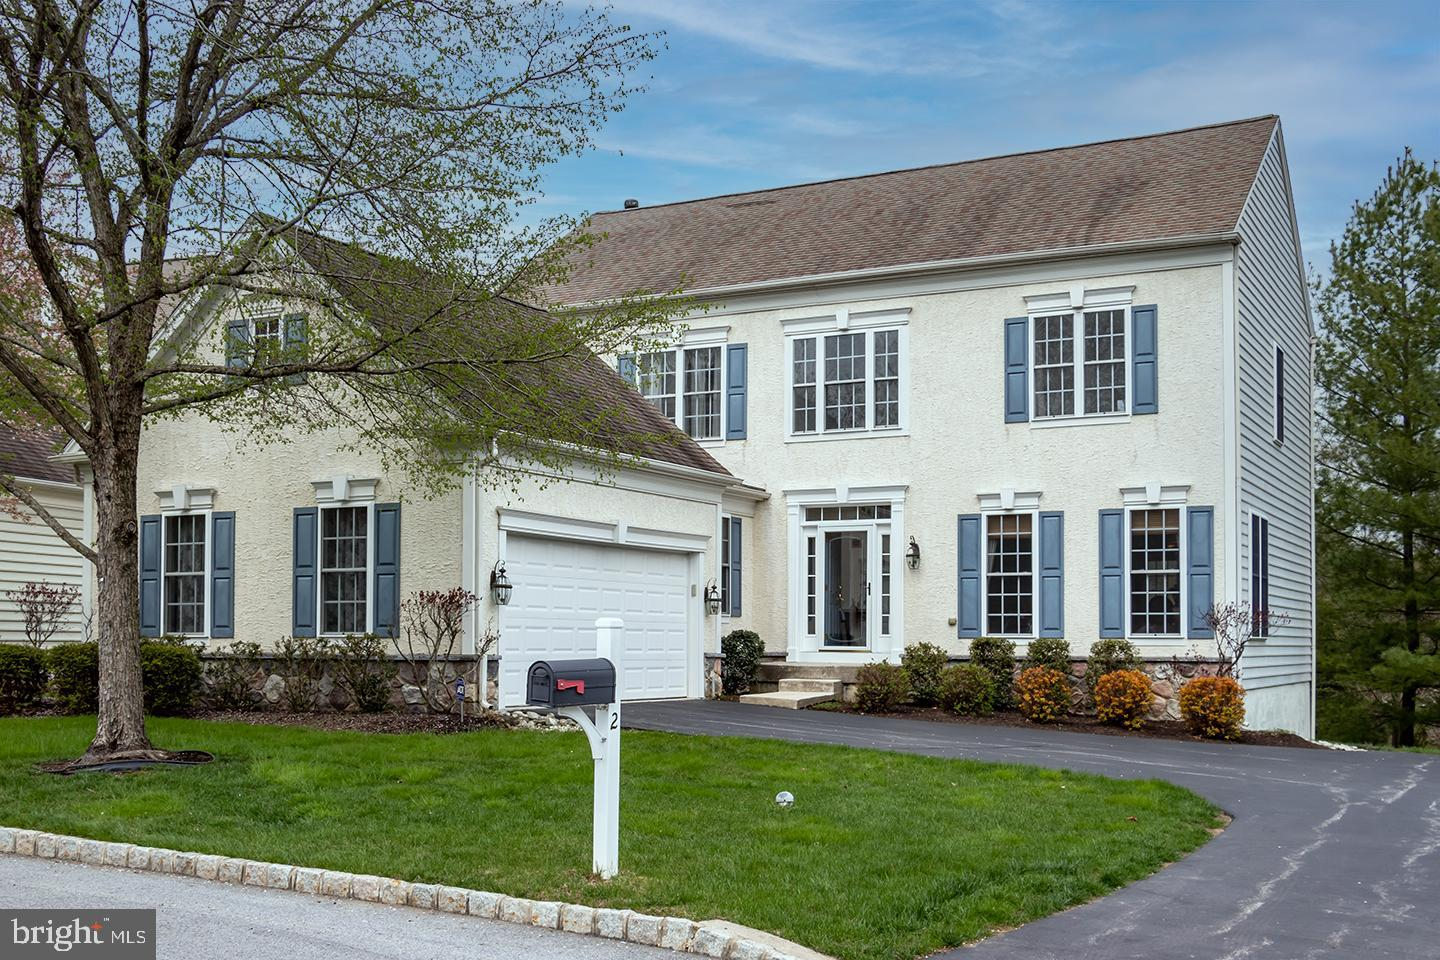 """Back on the market after a buyer fall thru, this stately 4 BR 3/1 BA home in desirable Hunter's Run offers a soaring foyer, open floor plan, miles of hardwood floors, custom trim work, gorgeous cabinetry, corian countertops, and stainless appliances kitchen, huge primary suite, first floor home office and laundry, finished walkout basement that could easily be an in-law or au pair suite, large deck with private rear yard, AND with lawn and landscaping included in the HOA! You are welcomed in with well-maintained mature landscaping to the soaring foyer with dramatic staircase and beautiful hardwood floors which sets the tone for an airy open concept floor plan.  Formal living and dining rooms flank the foyer and feature fabulous column detail and generous moldings - crown, chair rail, and wainscoting – which speaks to the craftsmanship throughout the house.  A large family room area with cozy gas fireplace w/custom mantle and trim detail above, recessed lighting, custom transom window to the office, all add to an open, comfortable vibe, perfect for family or entertaining.  The chef's kitchen has a large island with seating, 42"""" cabinets with crown molding and gold tone knobs, corian counter tops, stainless steel appliances (double wall oven with convection, gas cooktop, built-in microwave, dishwasher), custom tile backsplash, and sliding door to the deck.  The first floor also features an office with custom mouldings, powder room, garage entry, and multiple closets. The second level features a huge private owner's suite sanctuary with tray ceiling, ceiling fan, and tiled full bath (separate vanities, soaking garden tub, glass stall shower, and linen closet), and a walk in dual sided closet with attic access.  There are 2 additional large bedrooms that share a Jack and Jill full bathroom. The partially finished walk out basement provides a possible in-law or au pair suite, with lots of bright windows, a large bedroom with tiled full bath, a large living area with gas """